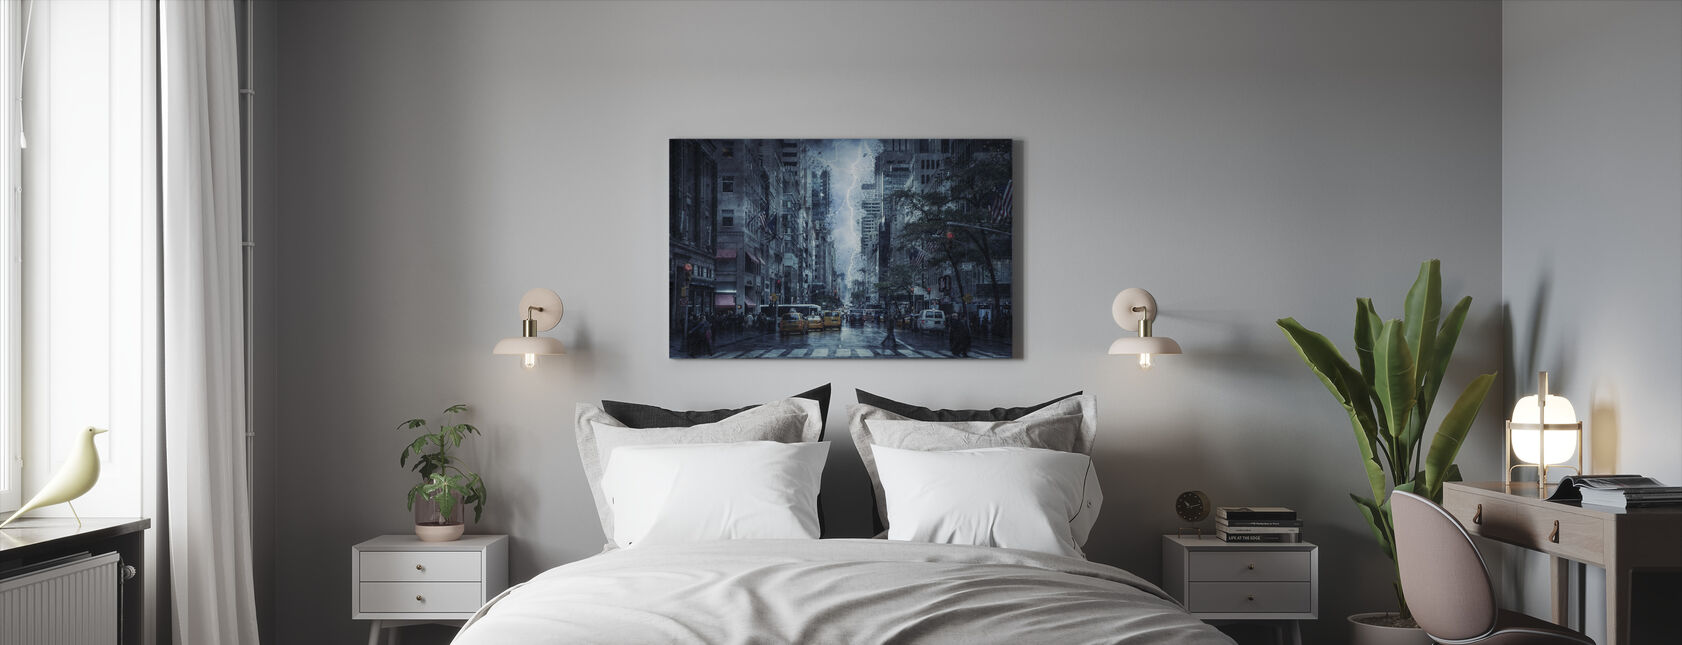 Storm in the City - Canvas print - Bedroom